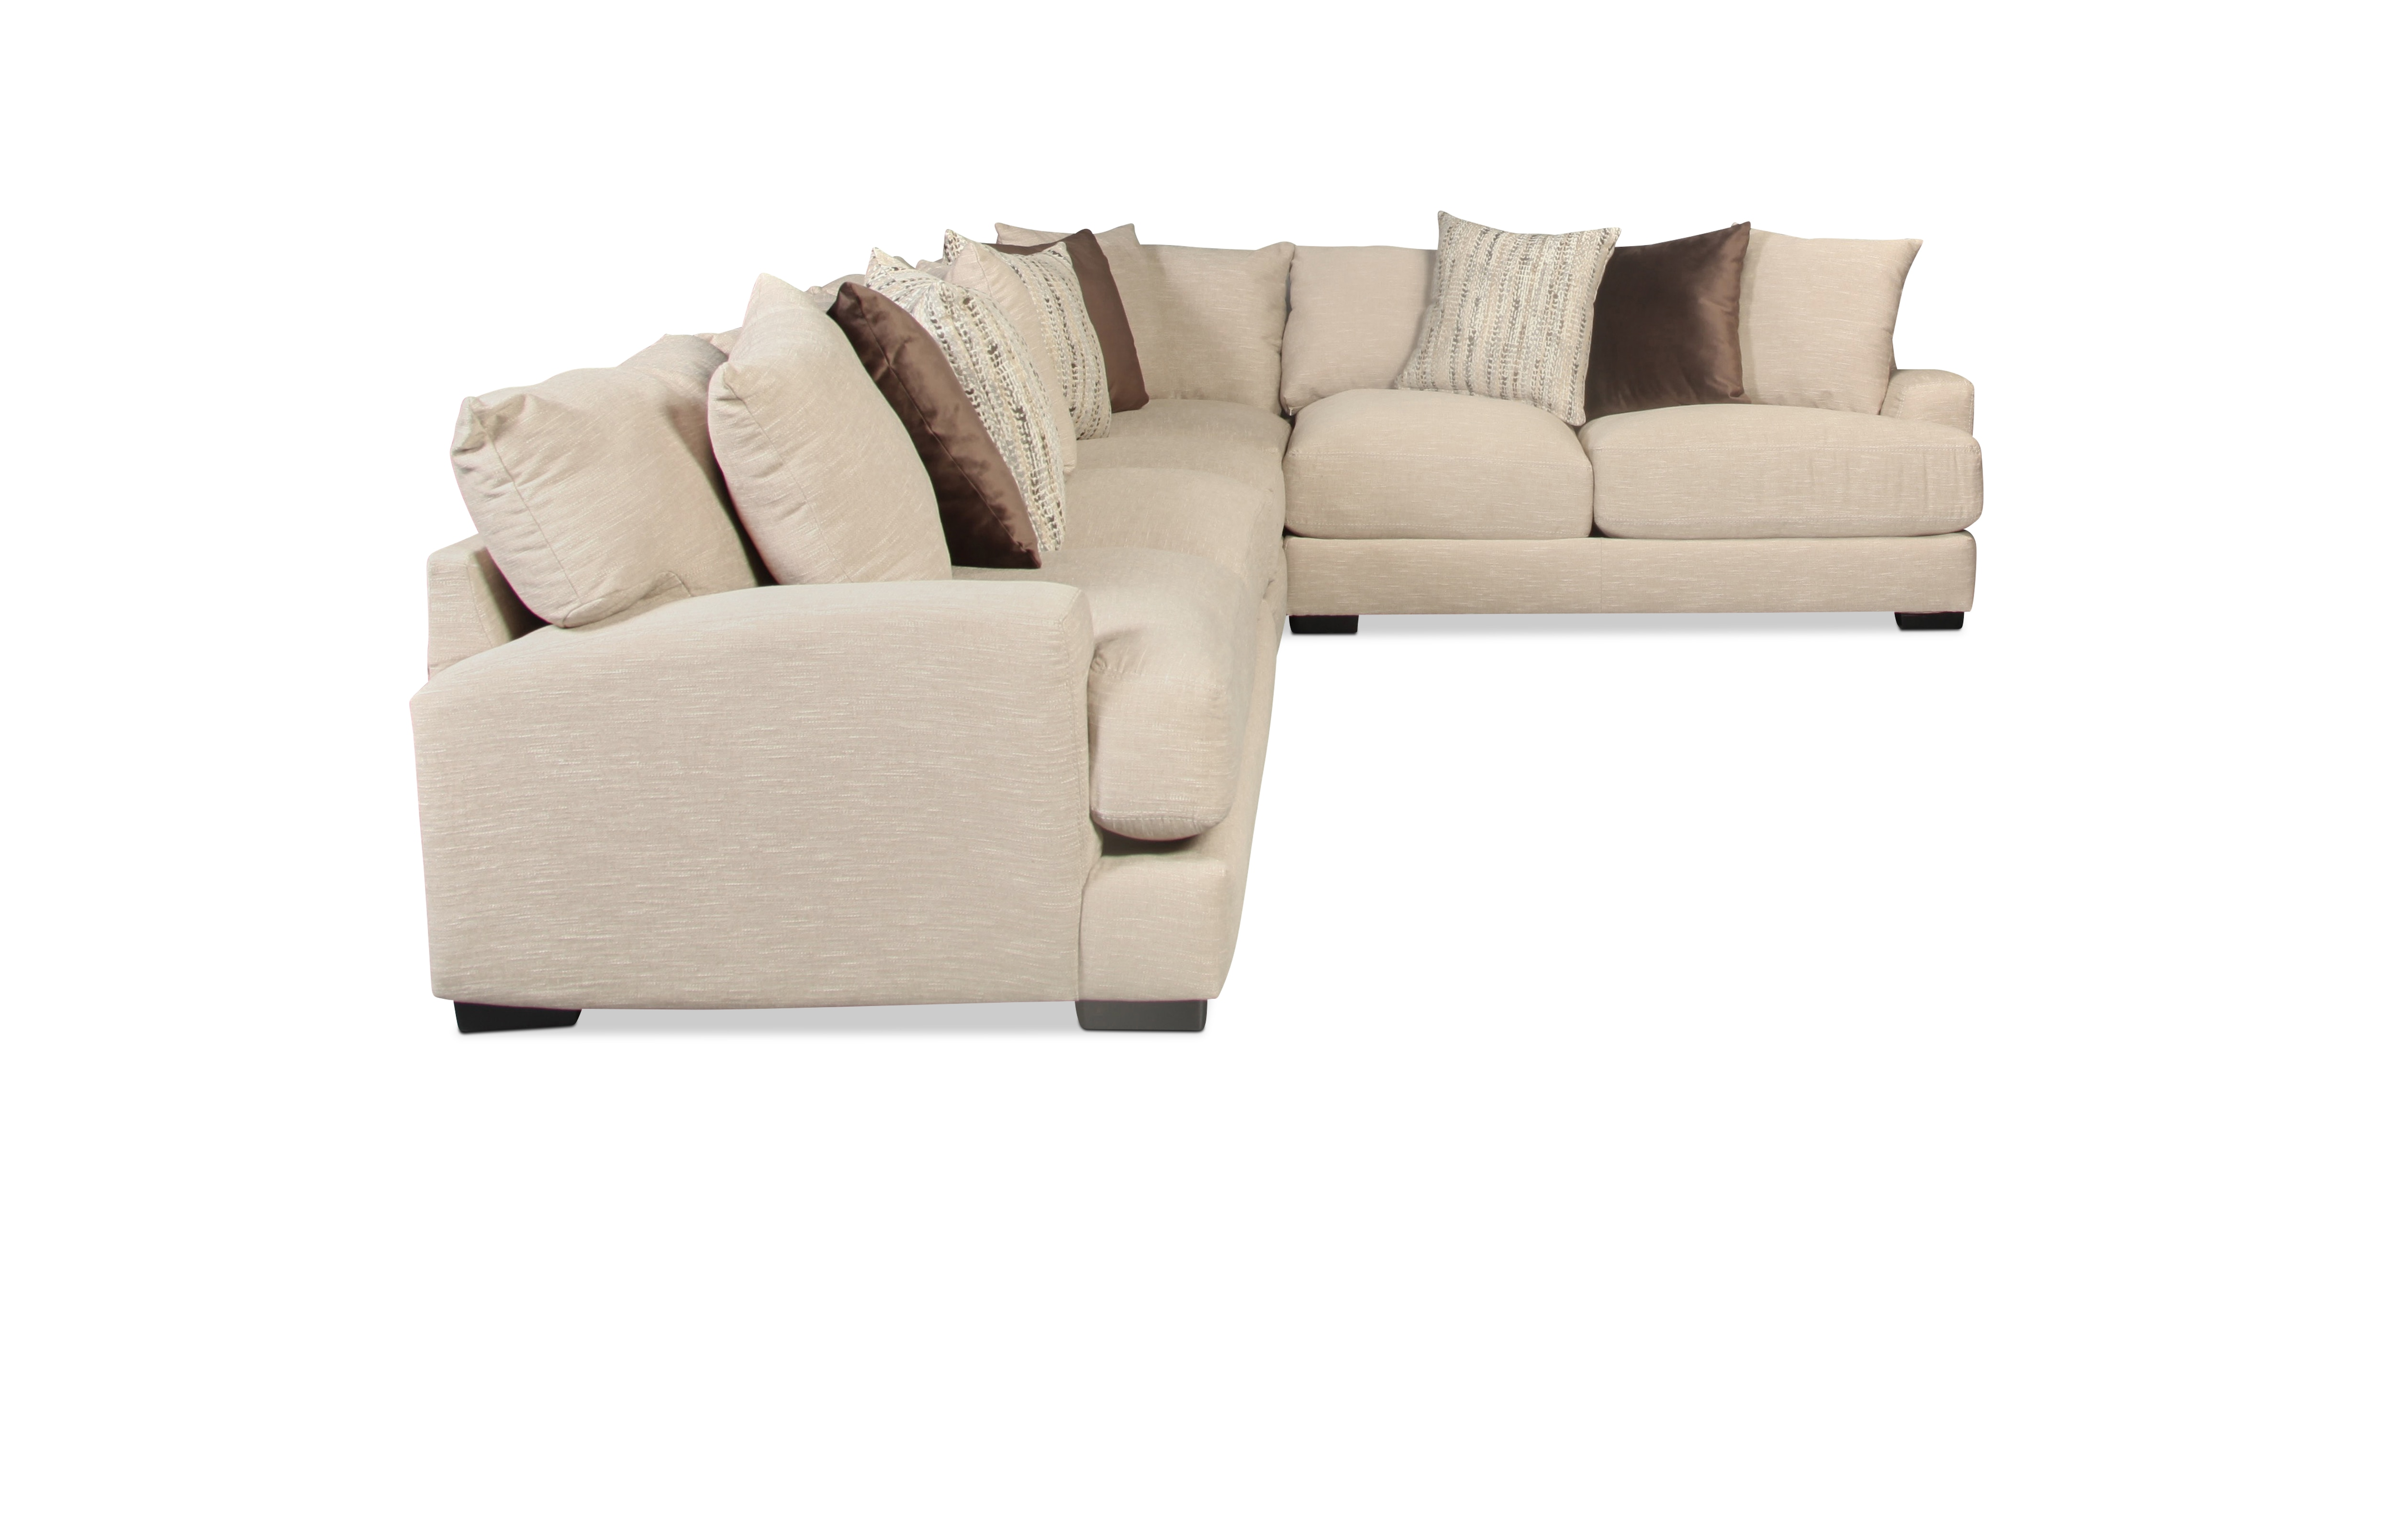 Caiden 4 piece sectional dusk levin furniture for Levin furniture sectional sofa